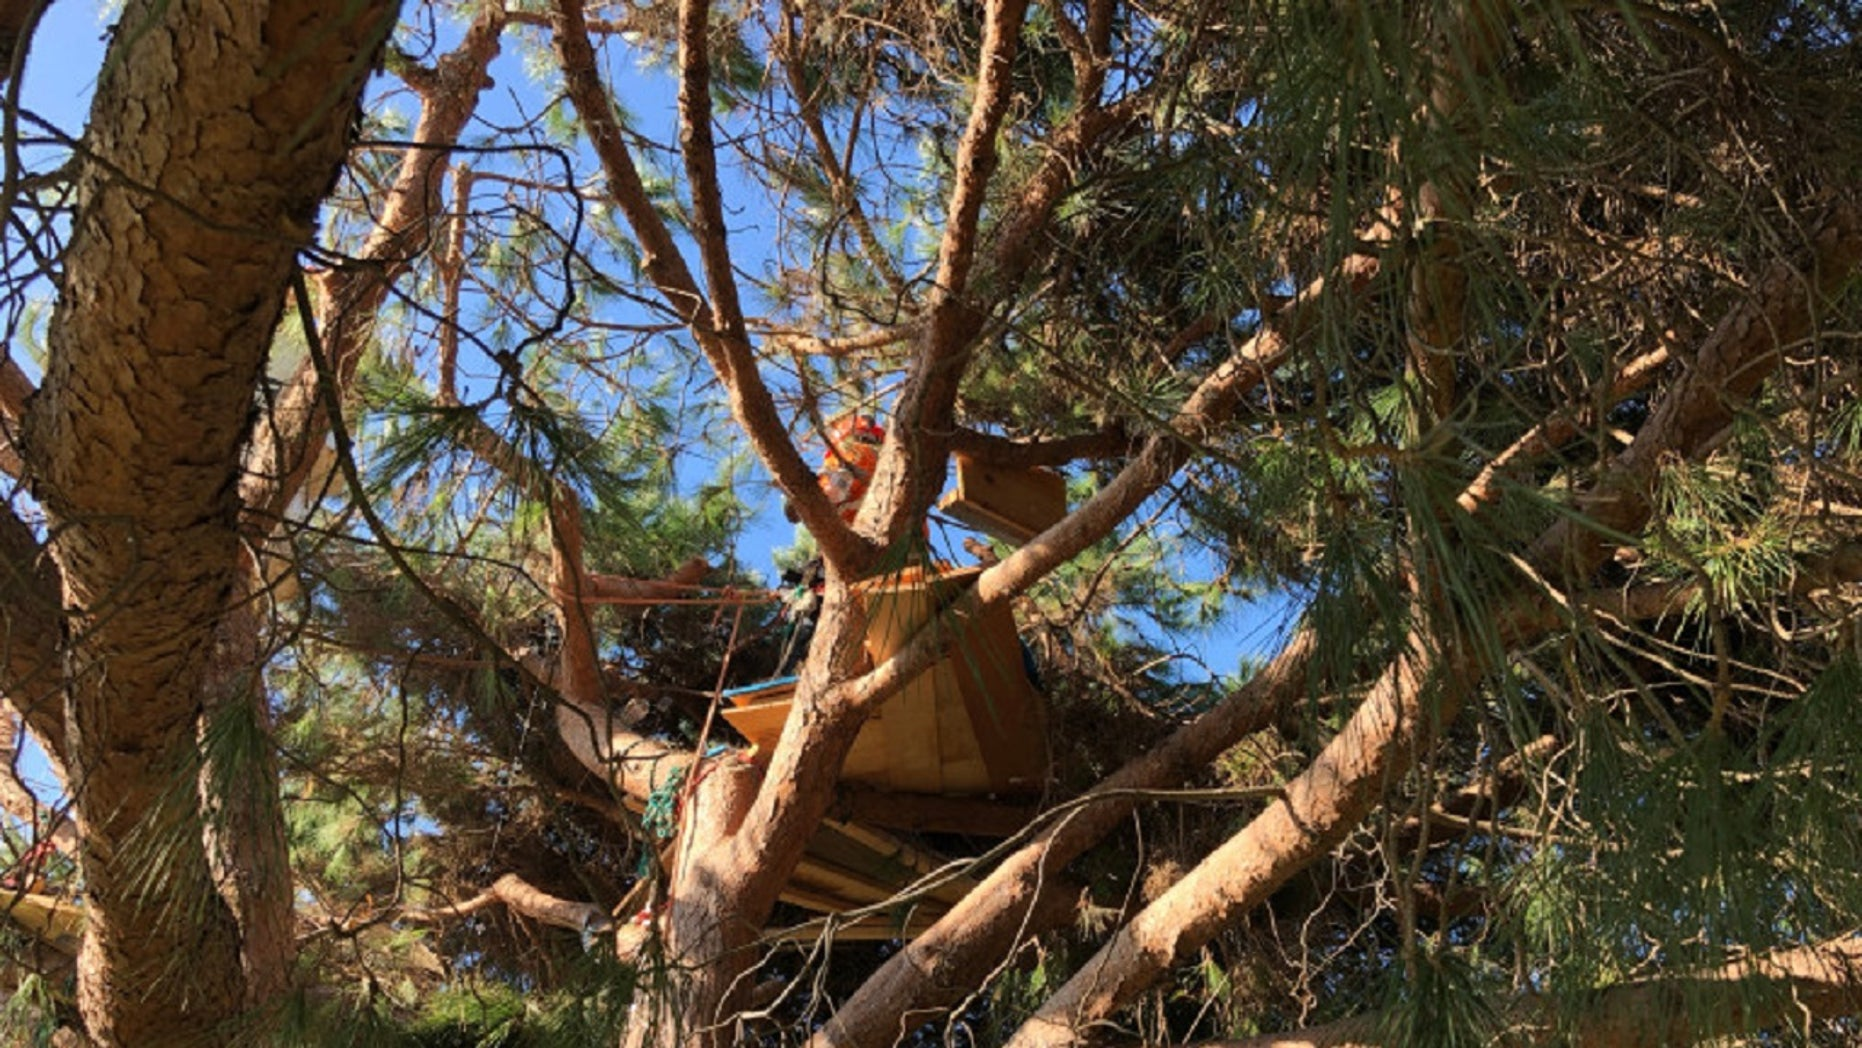 Authorities believe the tri-level tree house, equipped with an aquarium and ocean views, belonged to a homeless person.